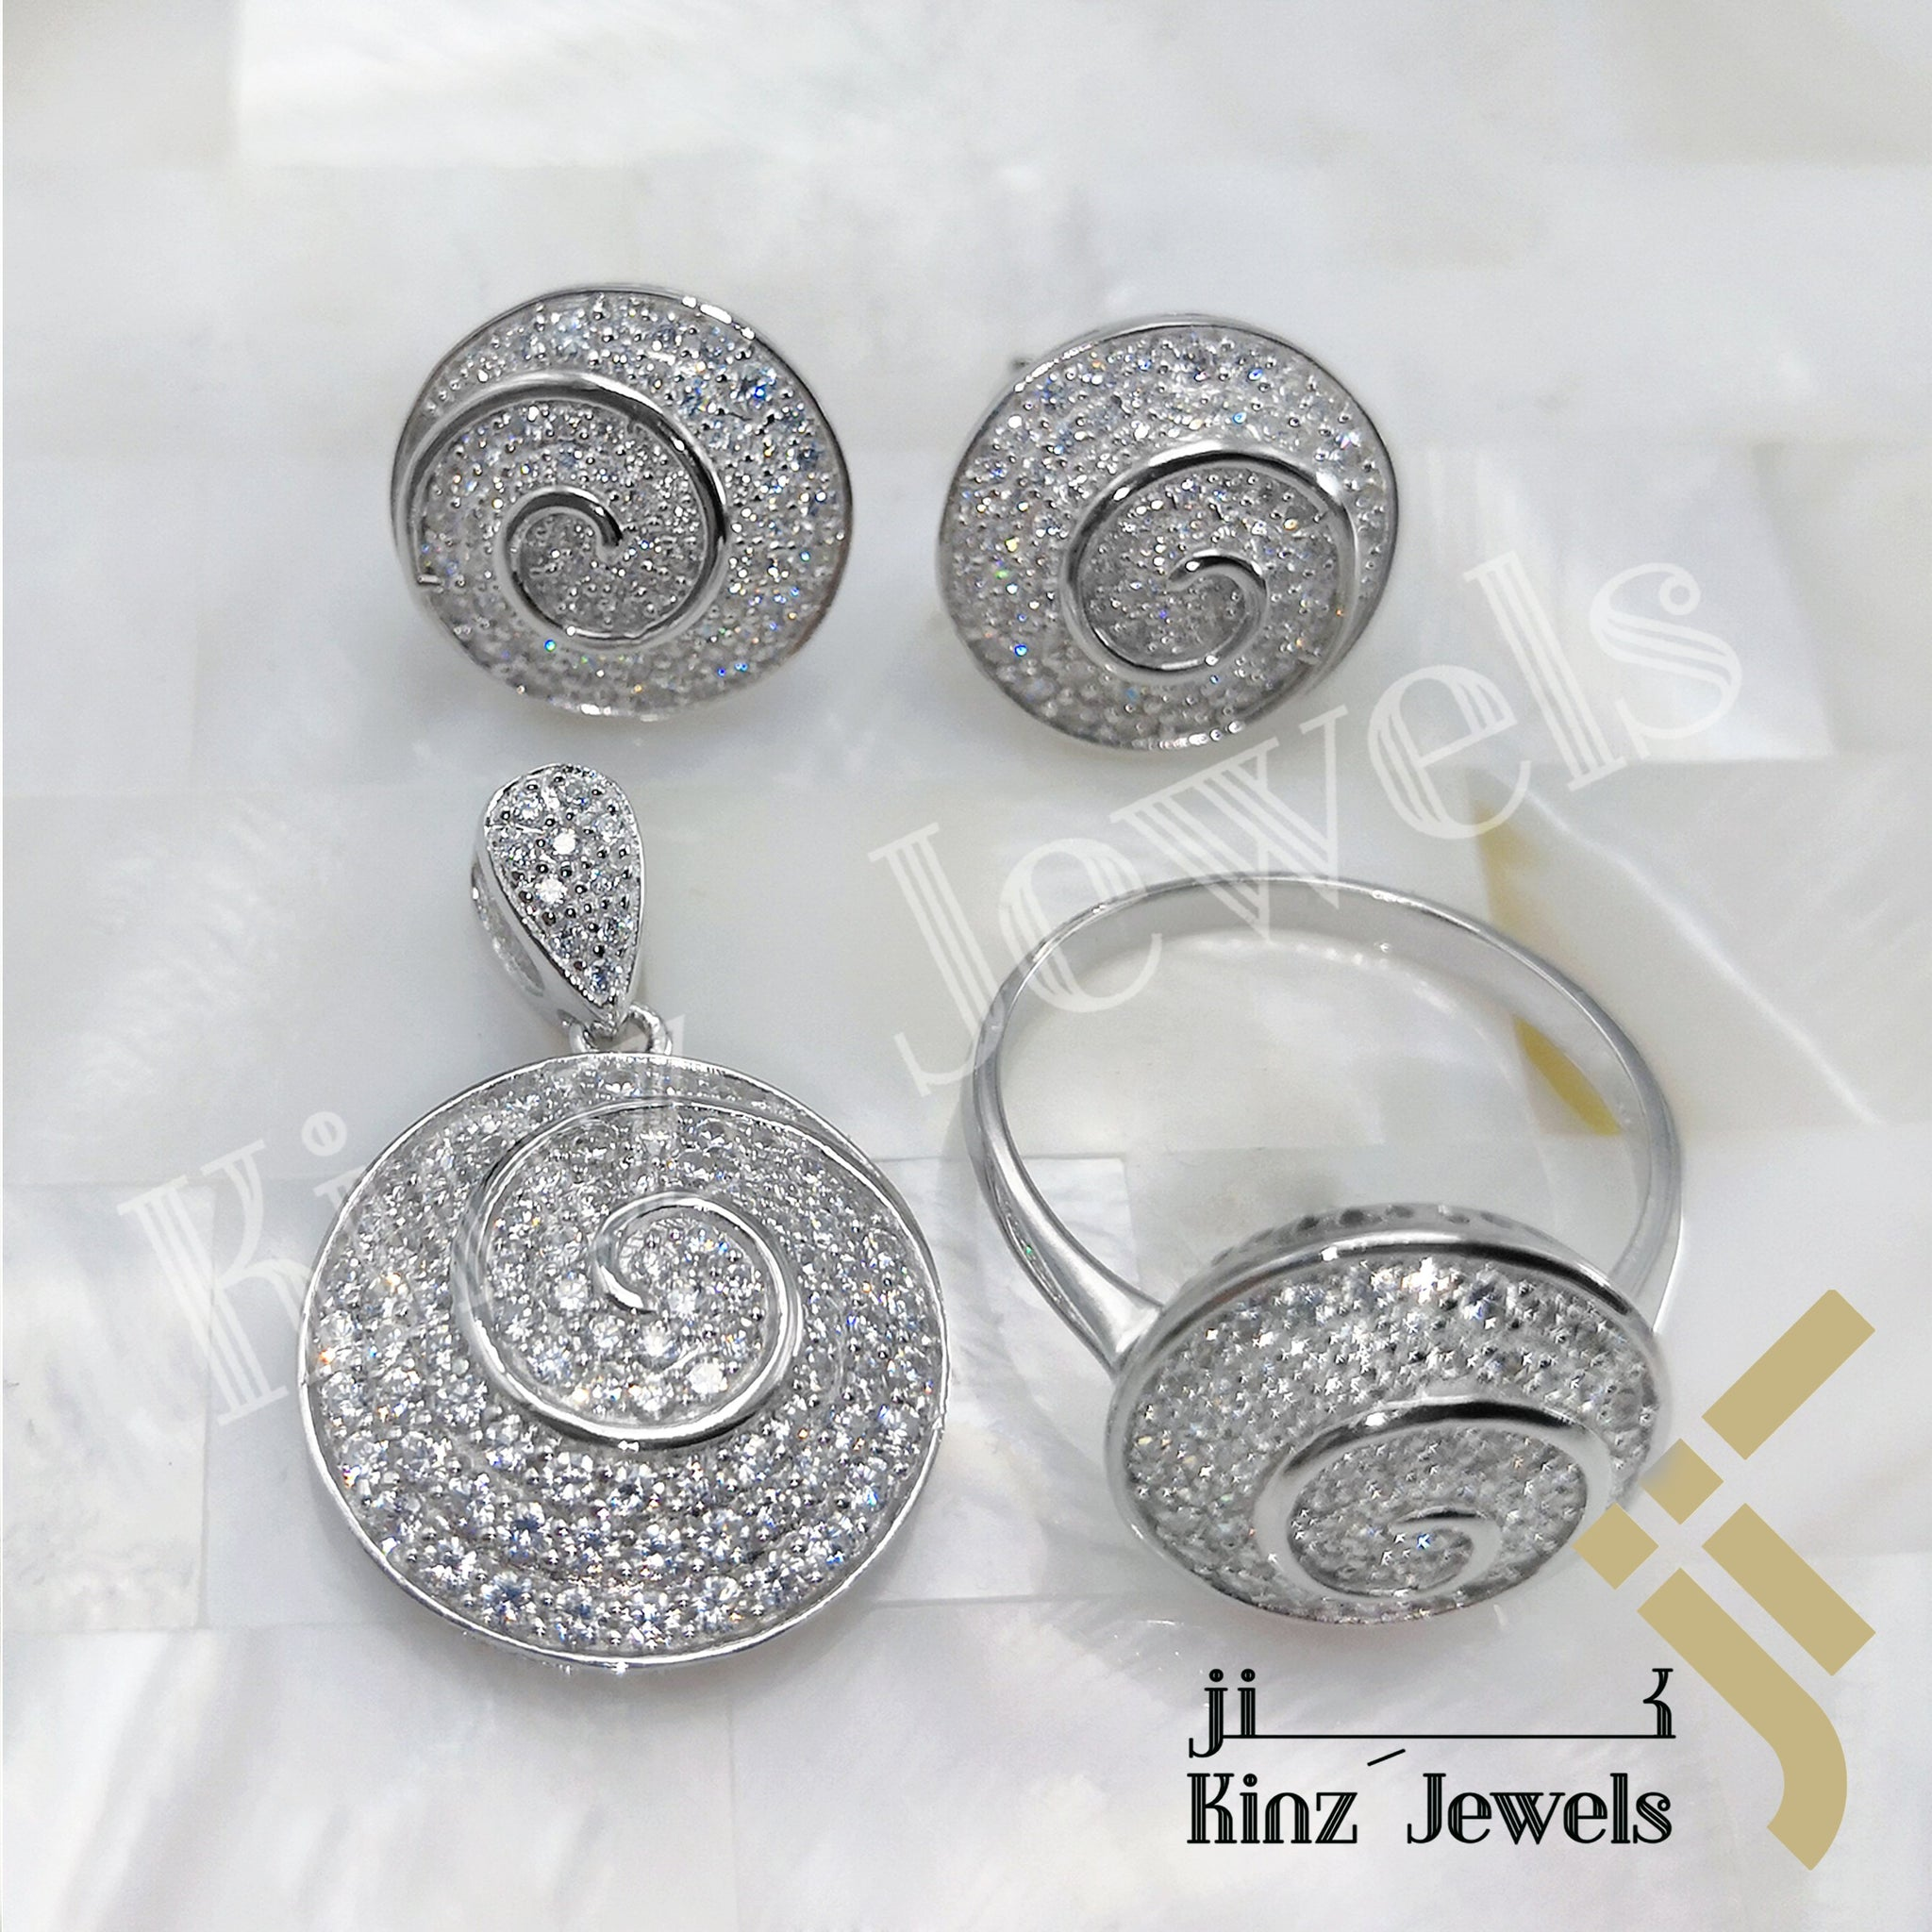 kinzjewels - Sterling Silver Rhodium Vermeil Spiral Full Zircon Jewelry Set